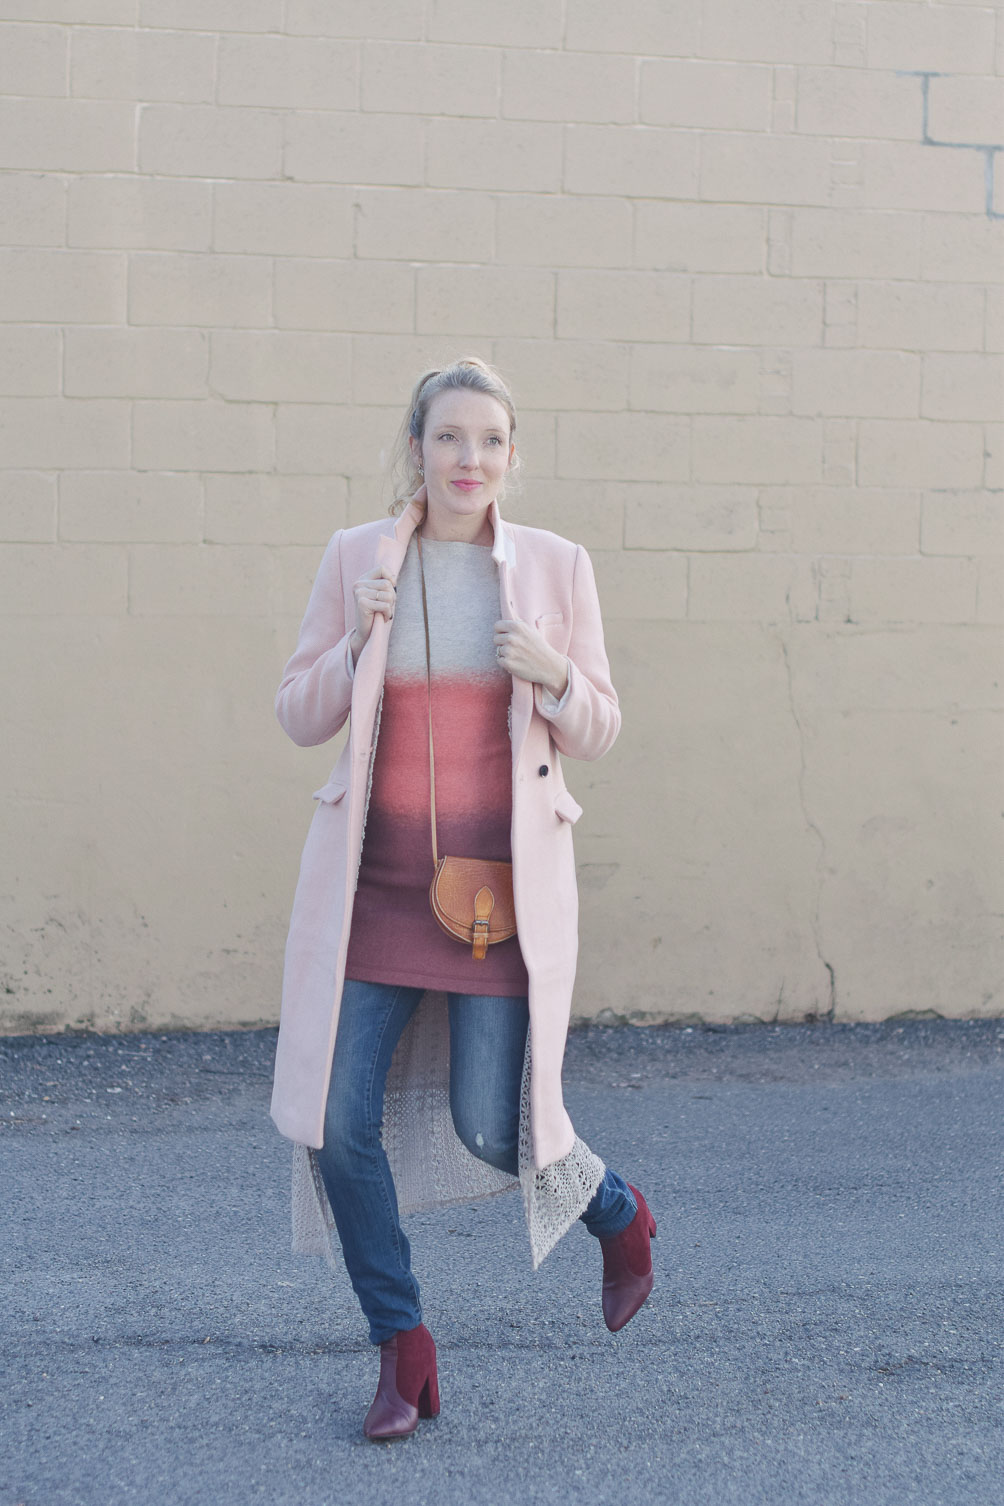 styling pink ombre layers for winter with a duster sweater, maternity jeans, and burgundy boots